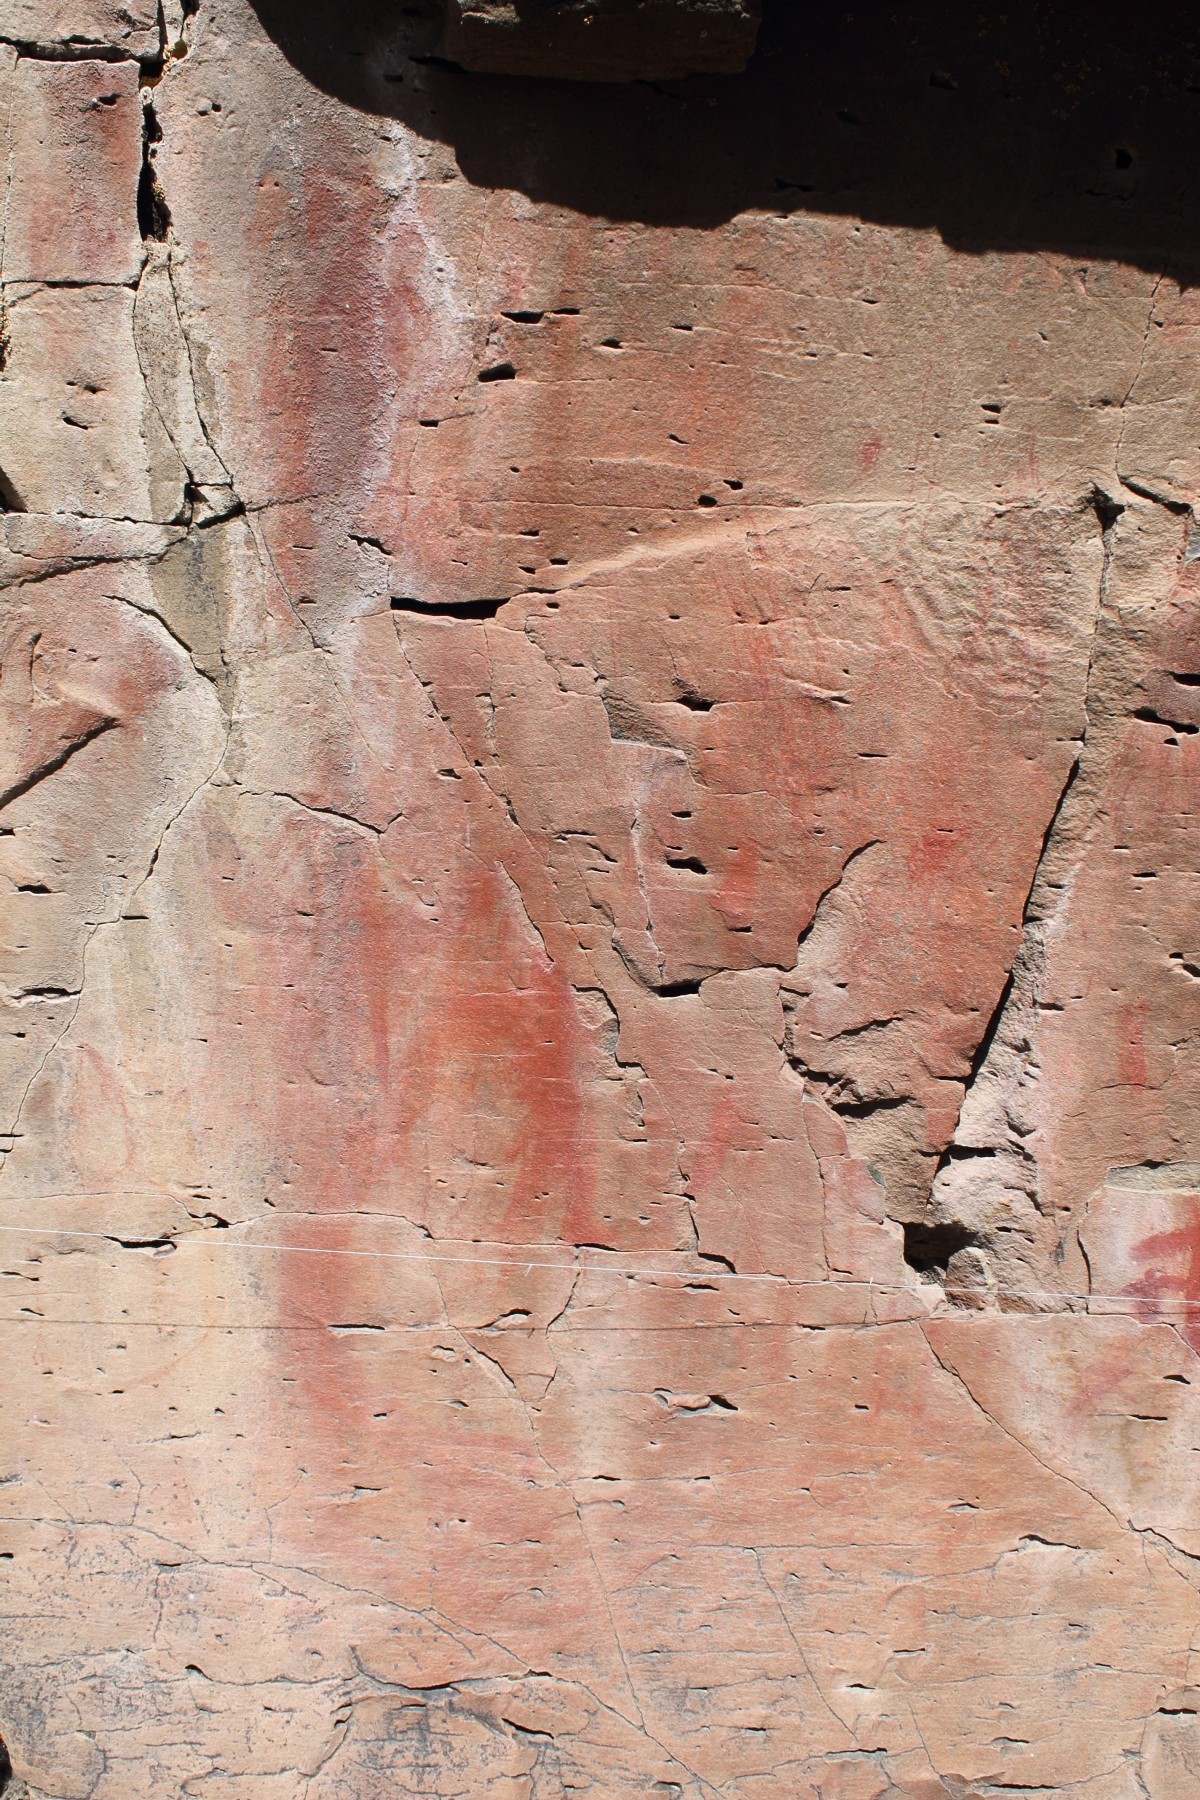 Free Images Hand Texture Desert Floor Formation Material Red Rock Canyon Native